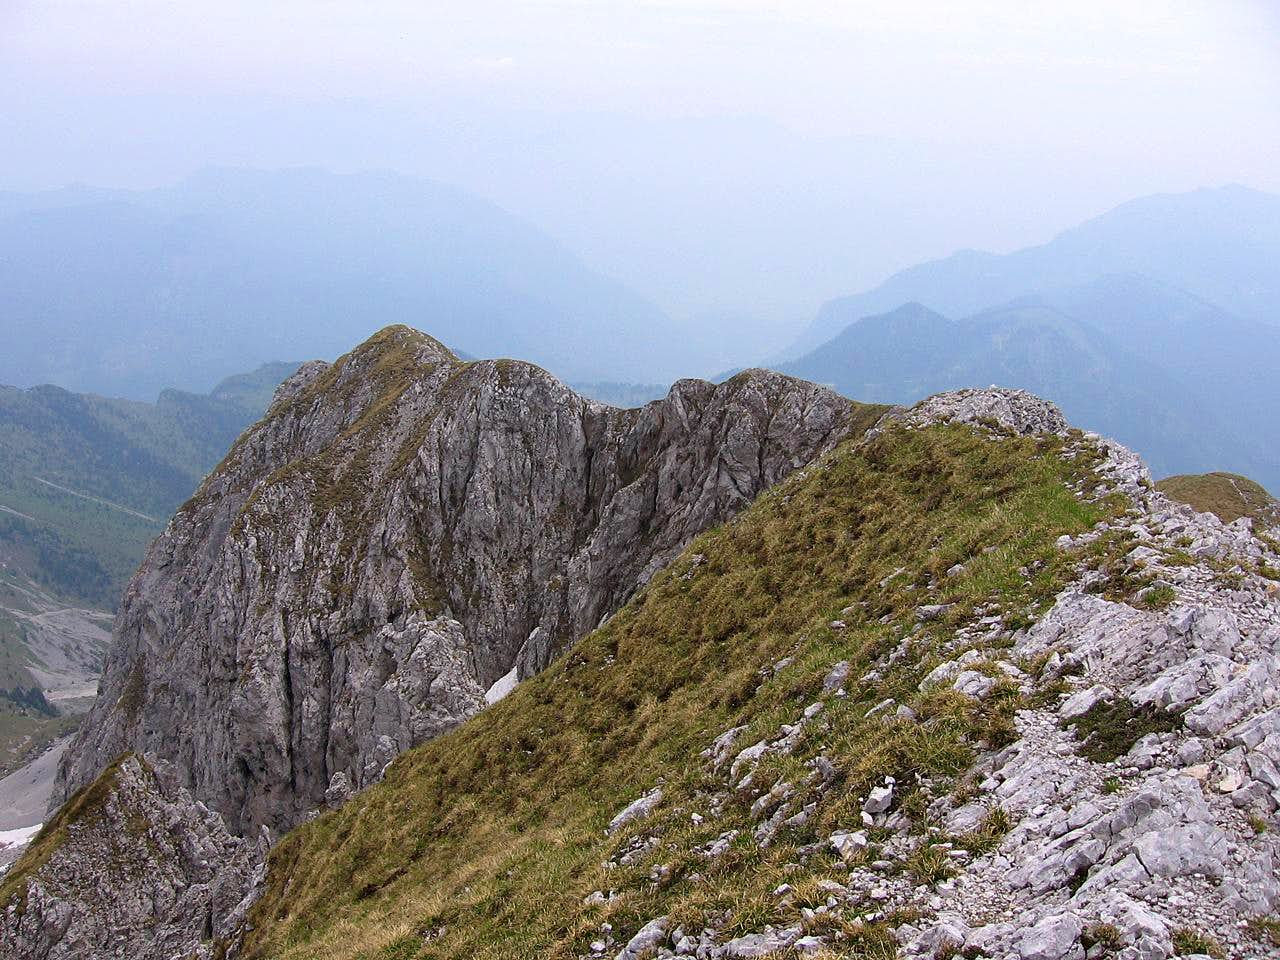 The ring of Corzene Peak